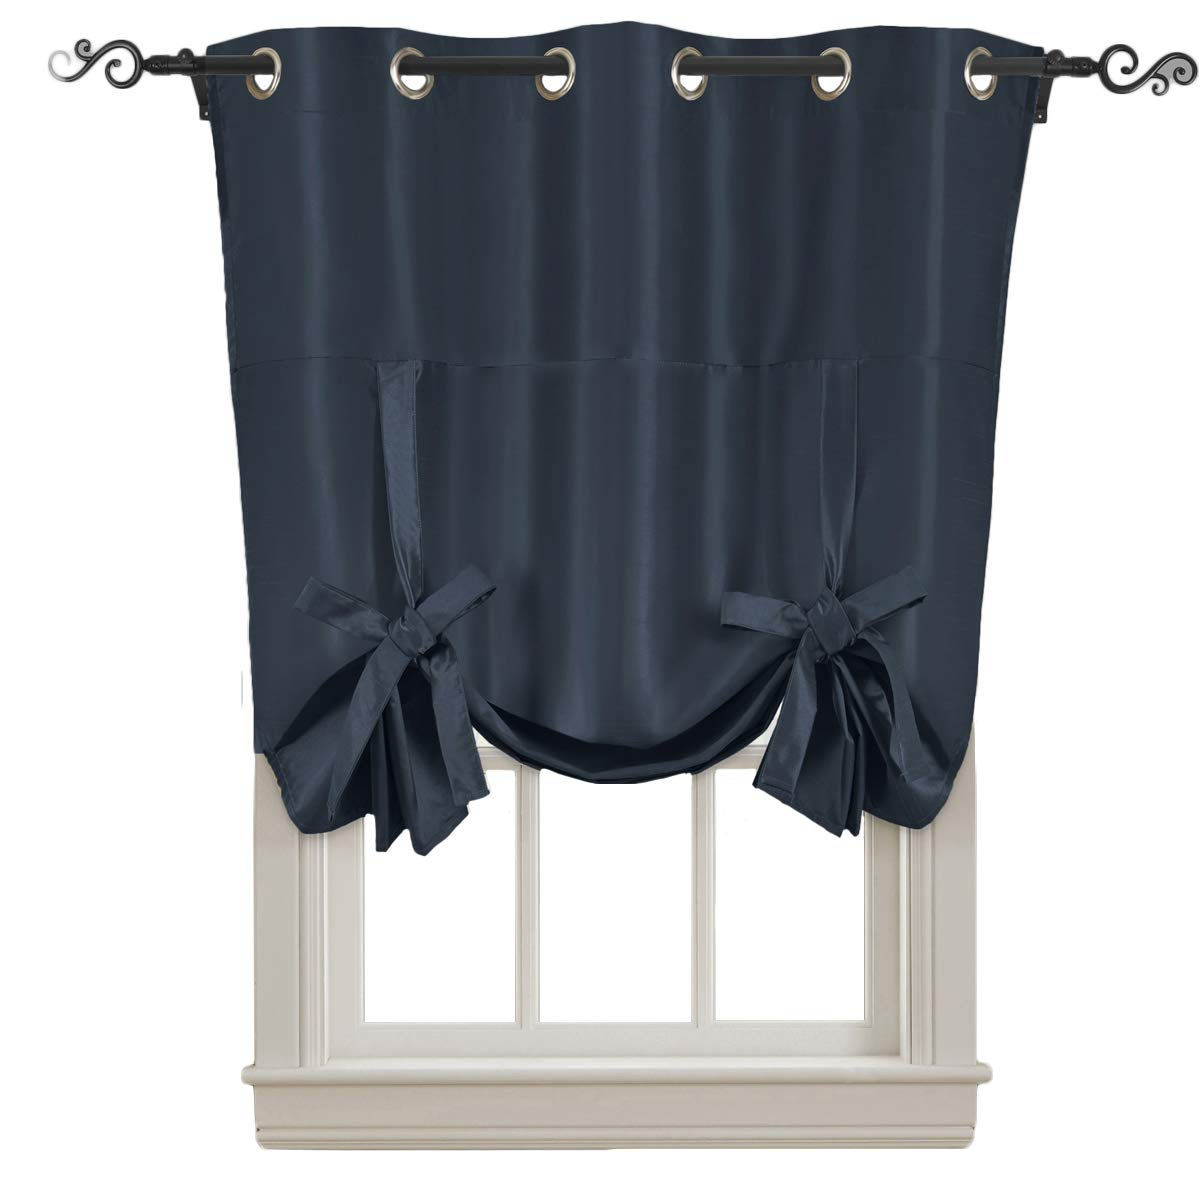 Royal Hotel Soho Navy Tie Up Shade, Blackout Window Curtain Panel, Top Grommet, Solid Pattern, 42x63 inches